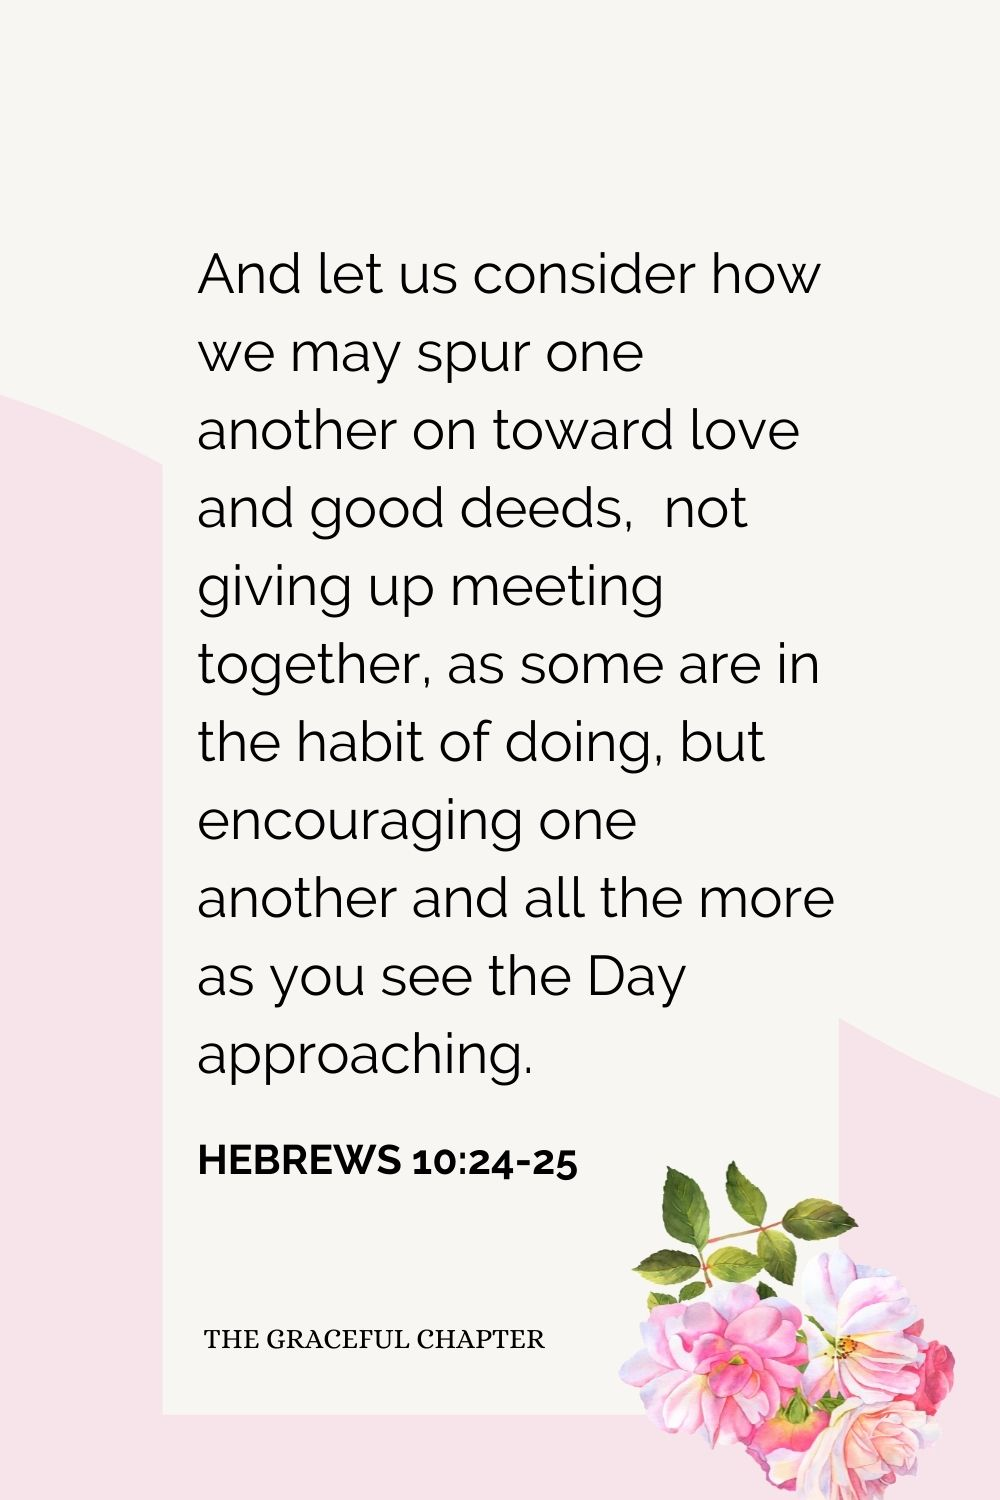 And let us consider how we may spur one another on toward love and good deeds,  not giving up meeting together, as some are in the habit of doing, but encouraging one another and all the more as you see the Day approaching. Hebrews 10:24-25